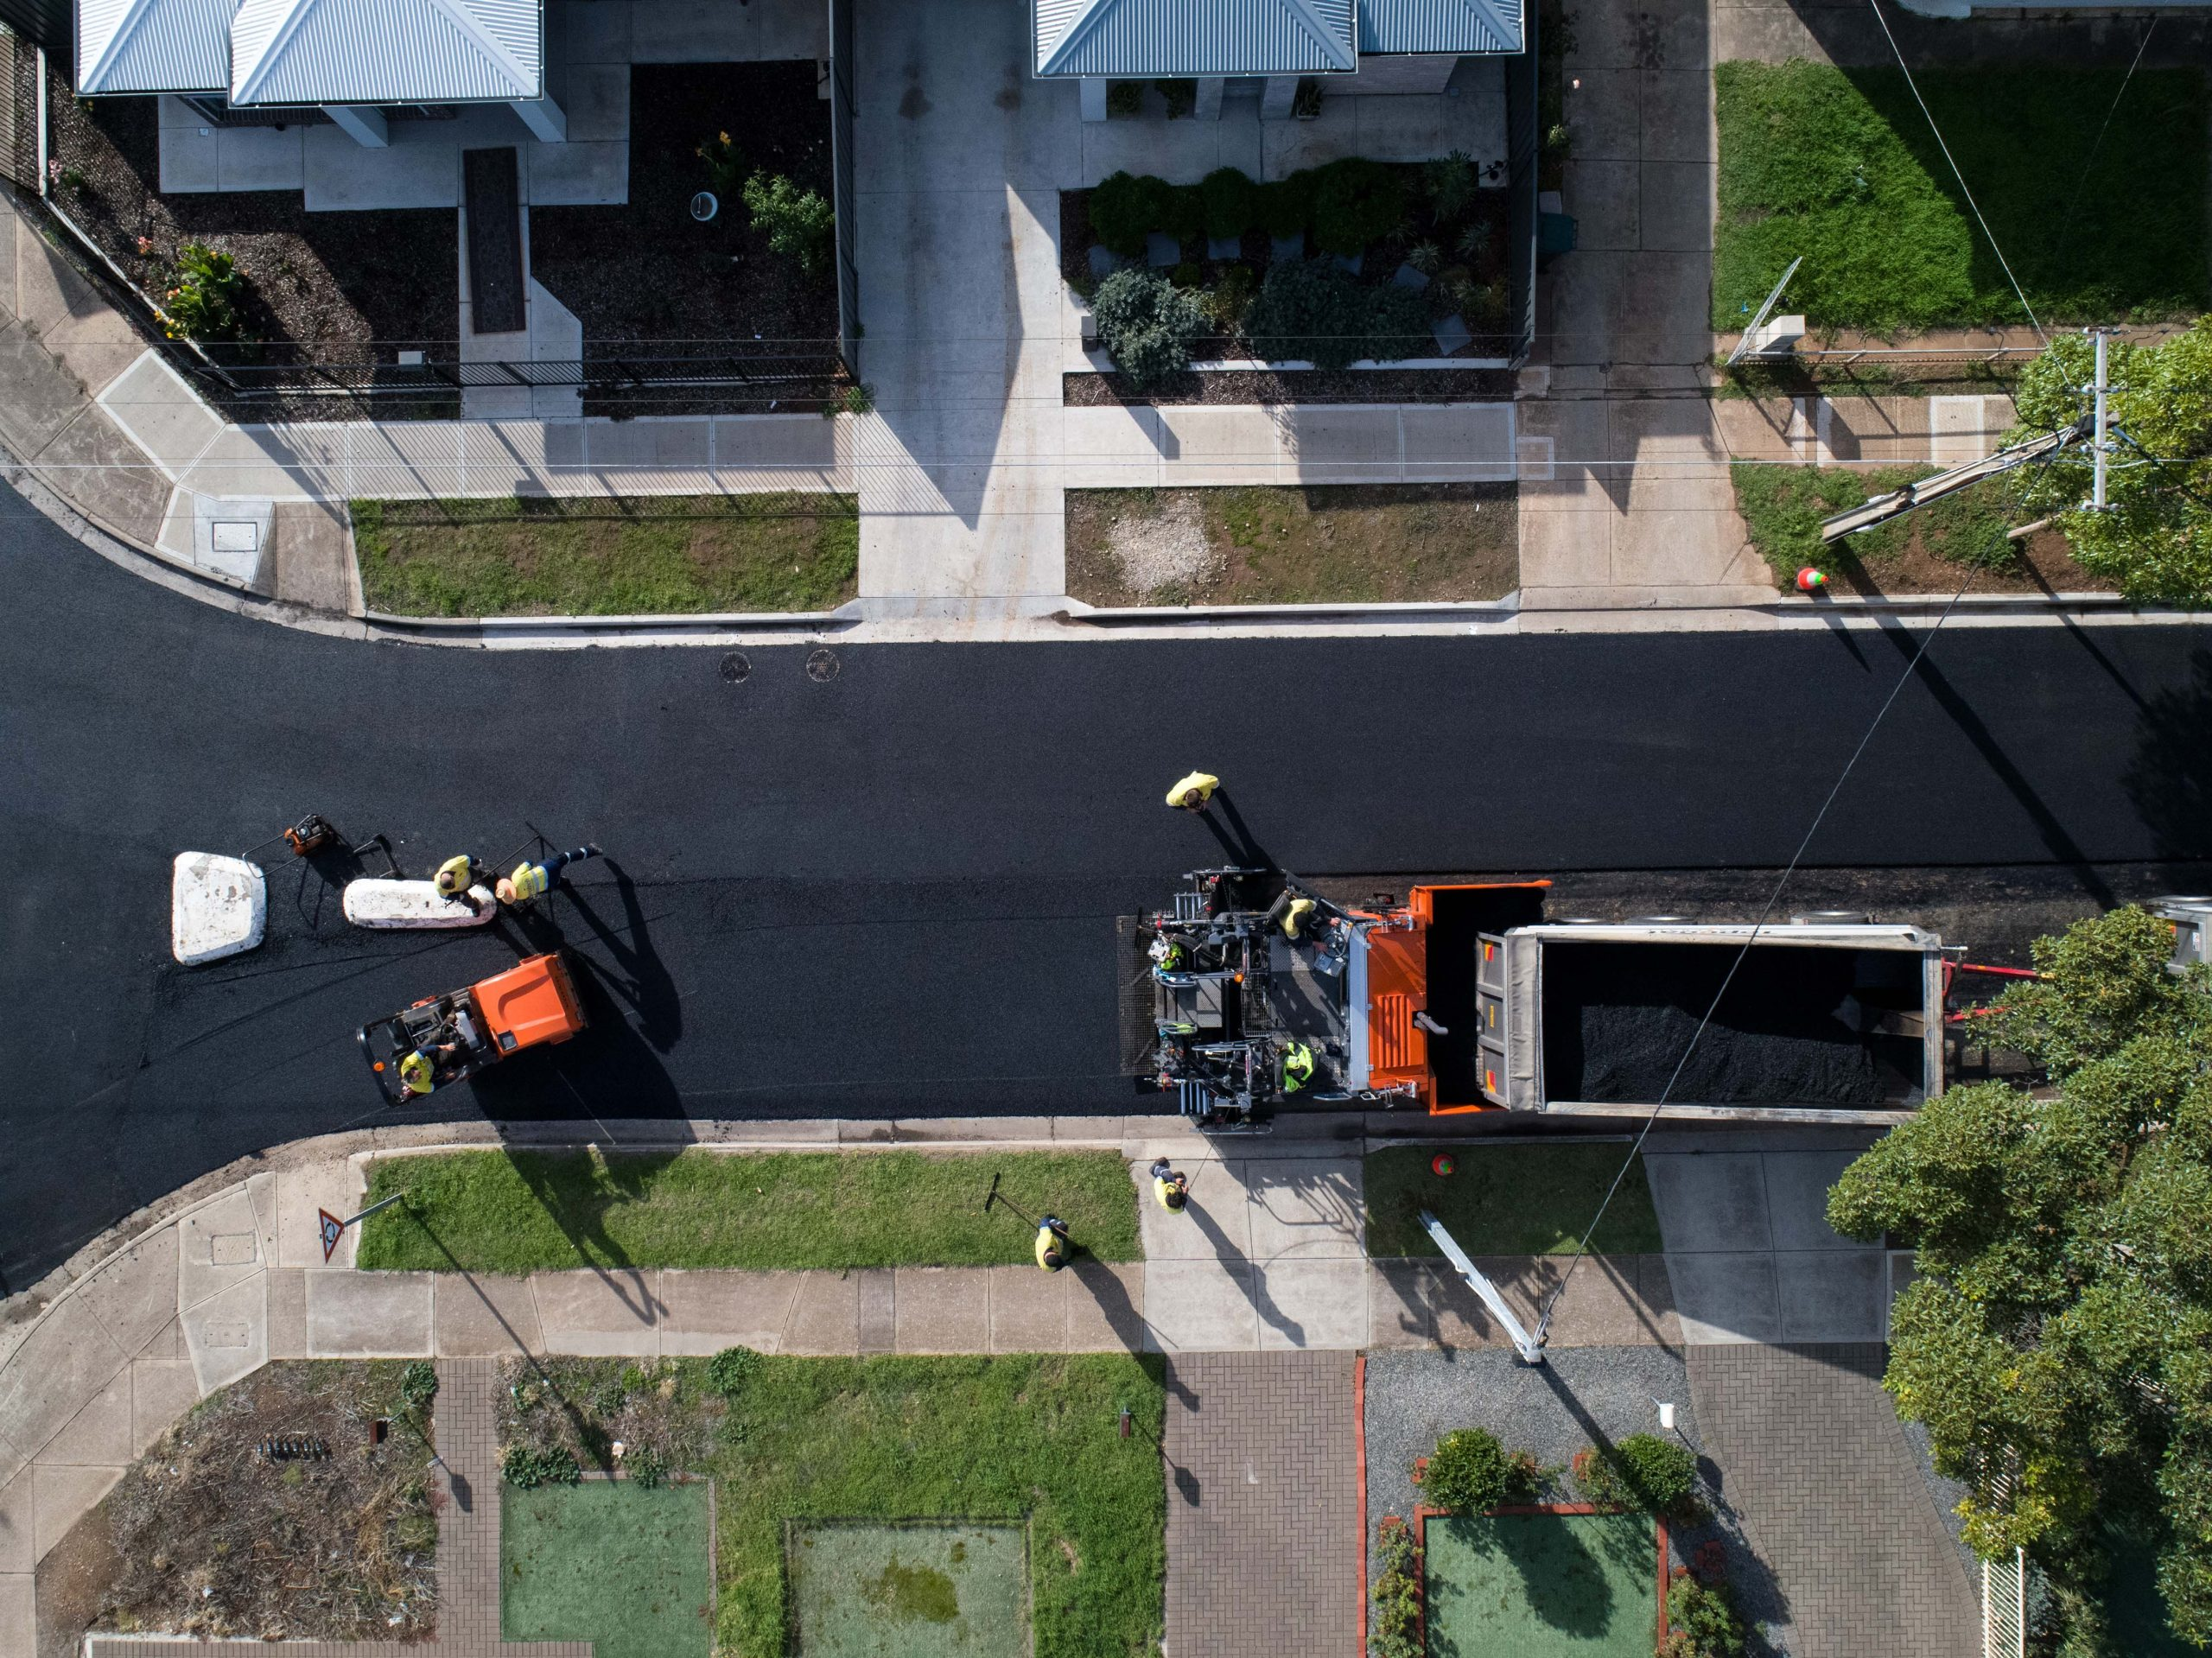 TSA & Topcoat complete one of the largest crumb rubber demonstration projects of its kind in Australia